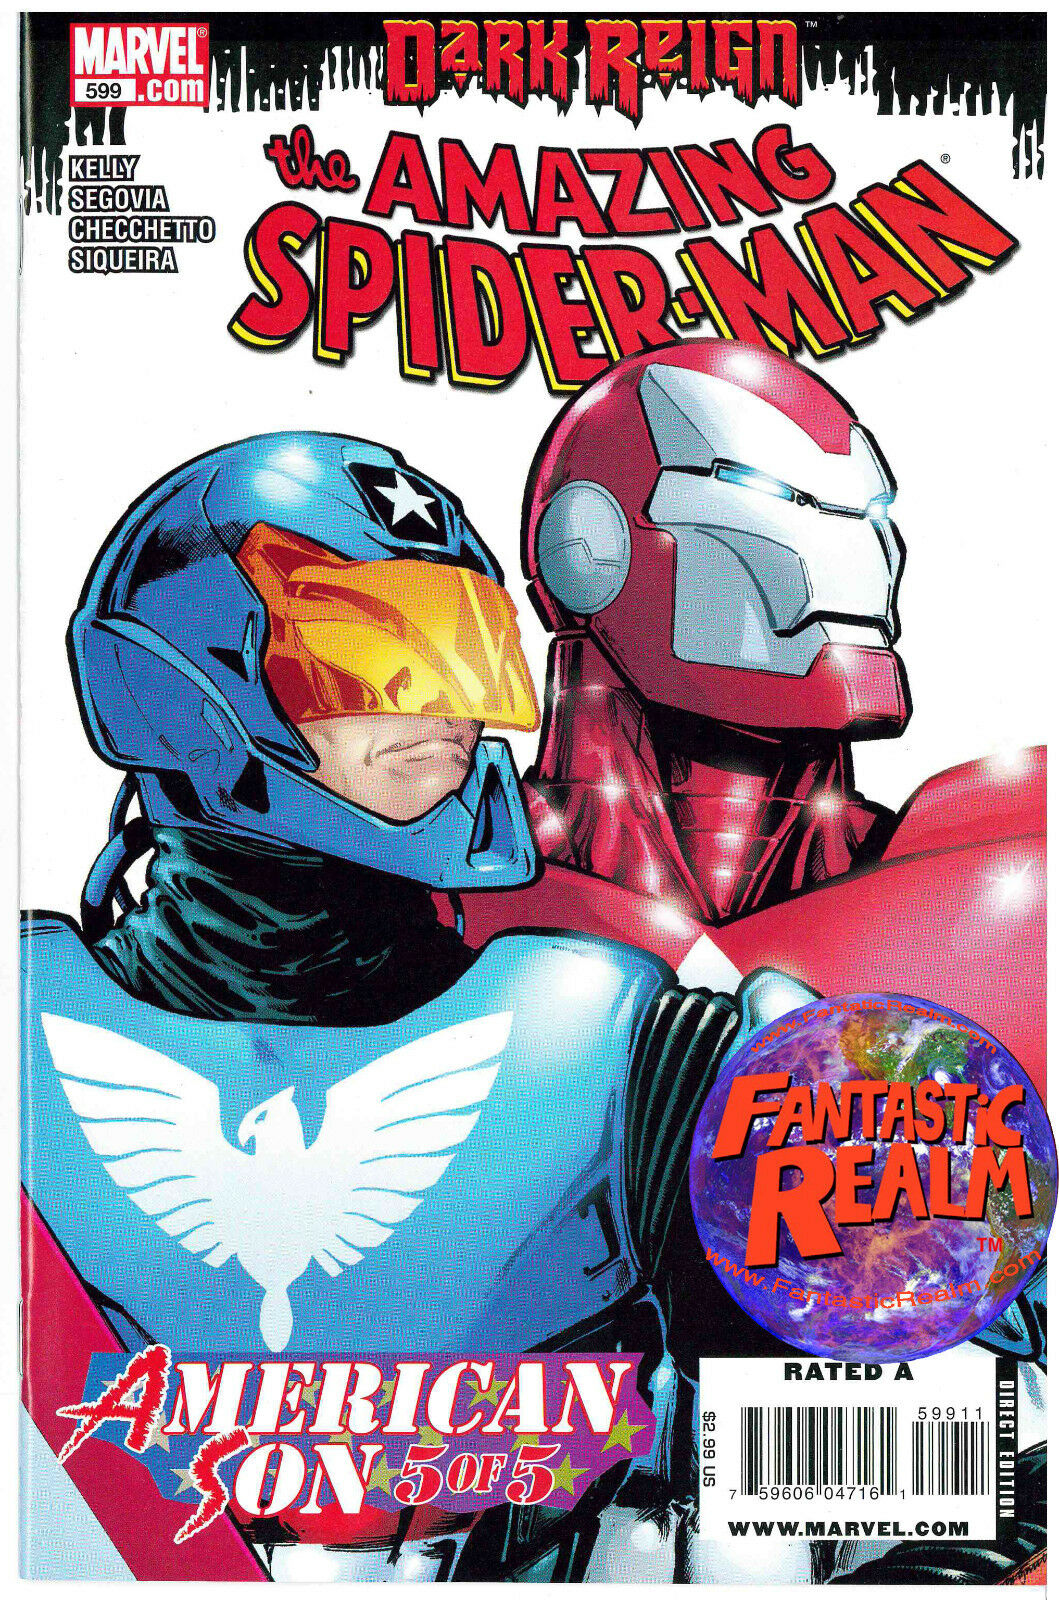 DARK REIGN AMAZING SPIDERMAN #599: AMERICAN SON MARVEL COMICS